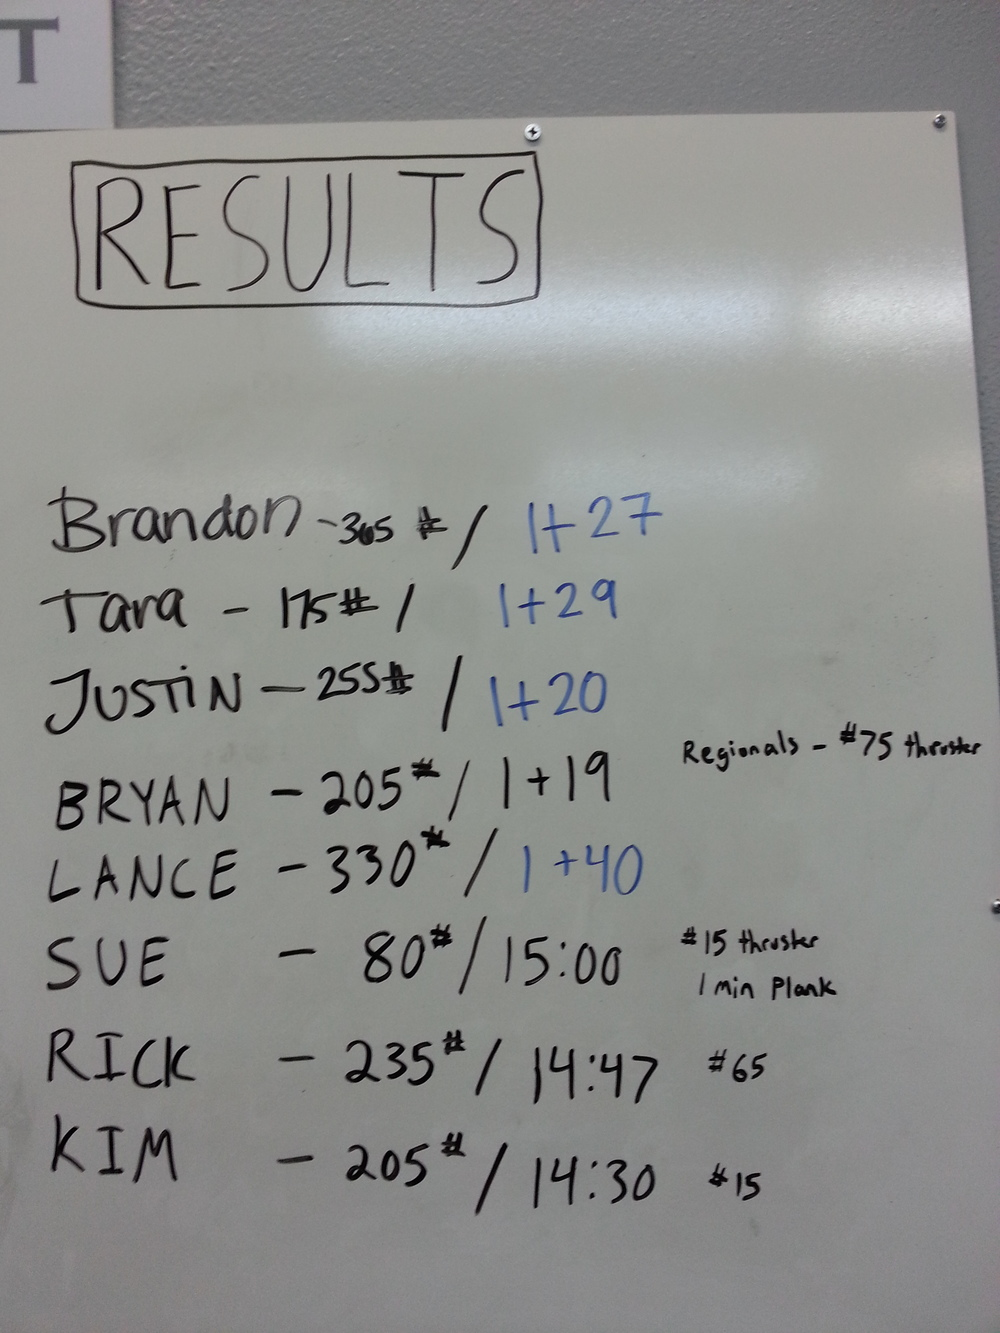 Results from 6/19